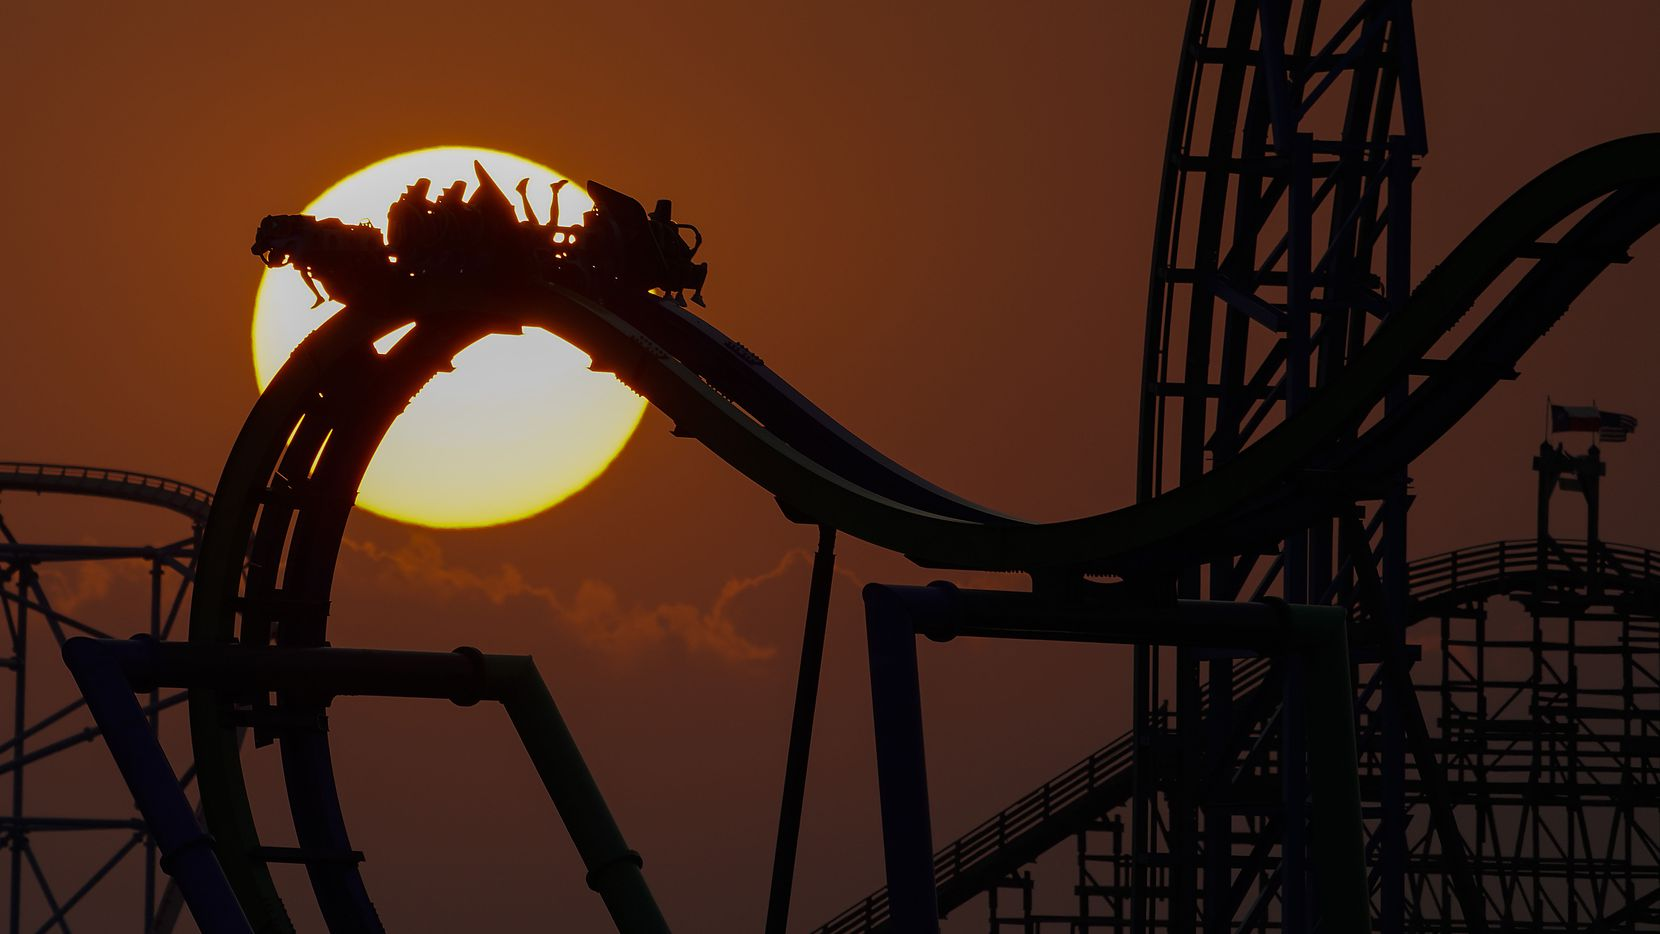 People ride The Joker thrill ride as the sun sets behind Six Flags Over Texas amusement park on Sunday, Sept. 27, 2020.